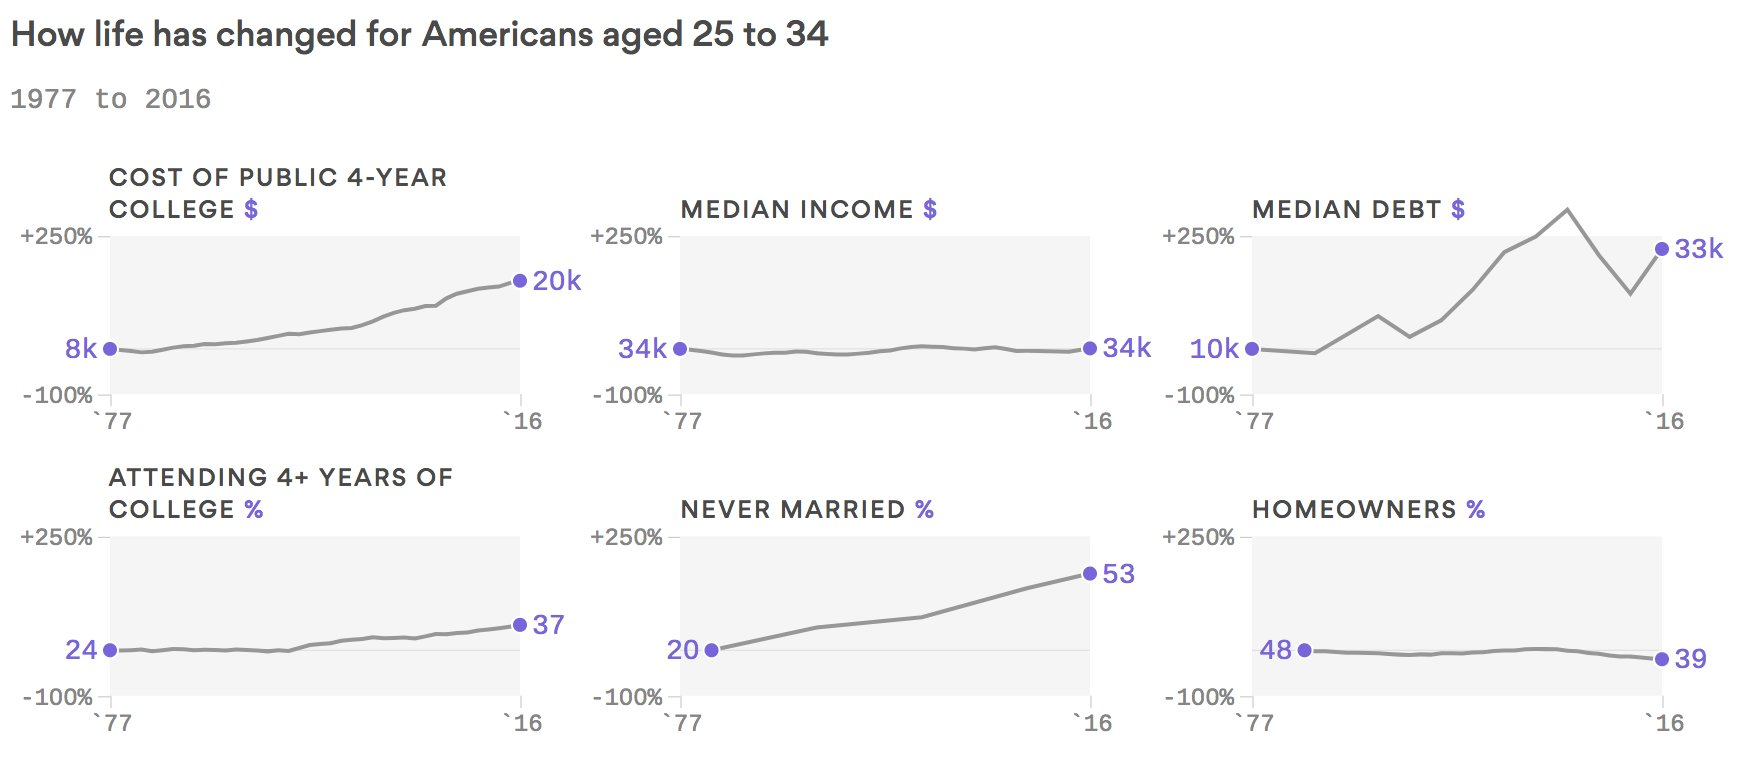 How life has changed for Americans aged 25 to 34